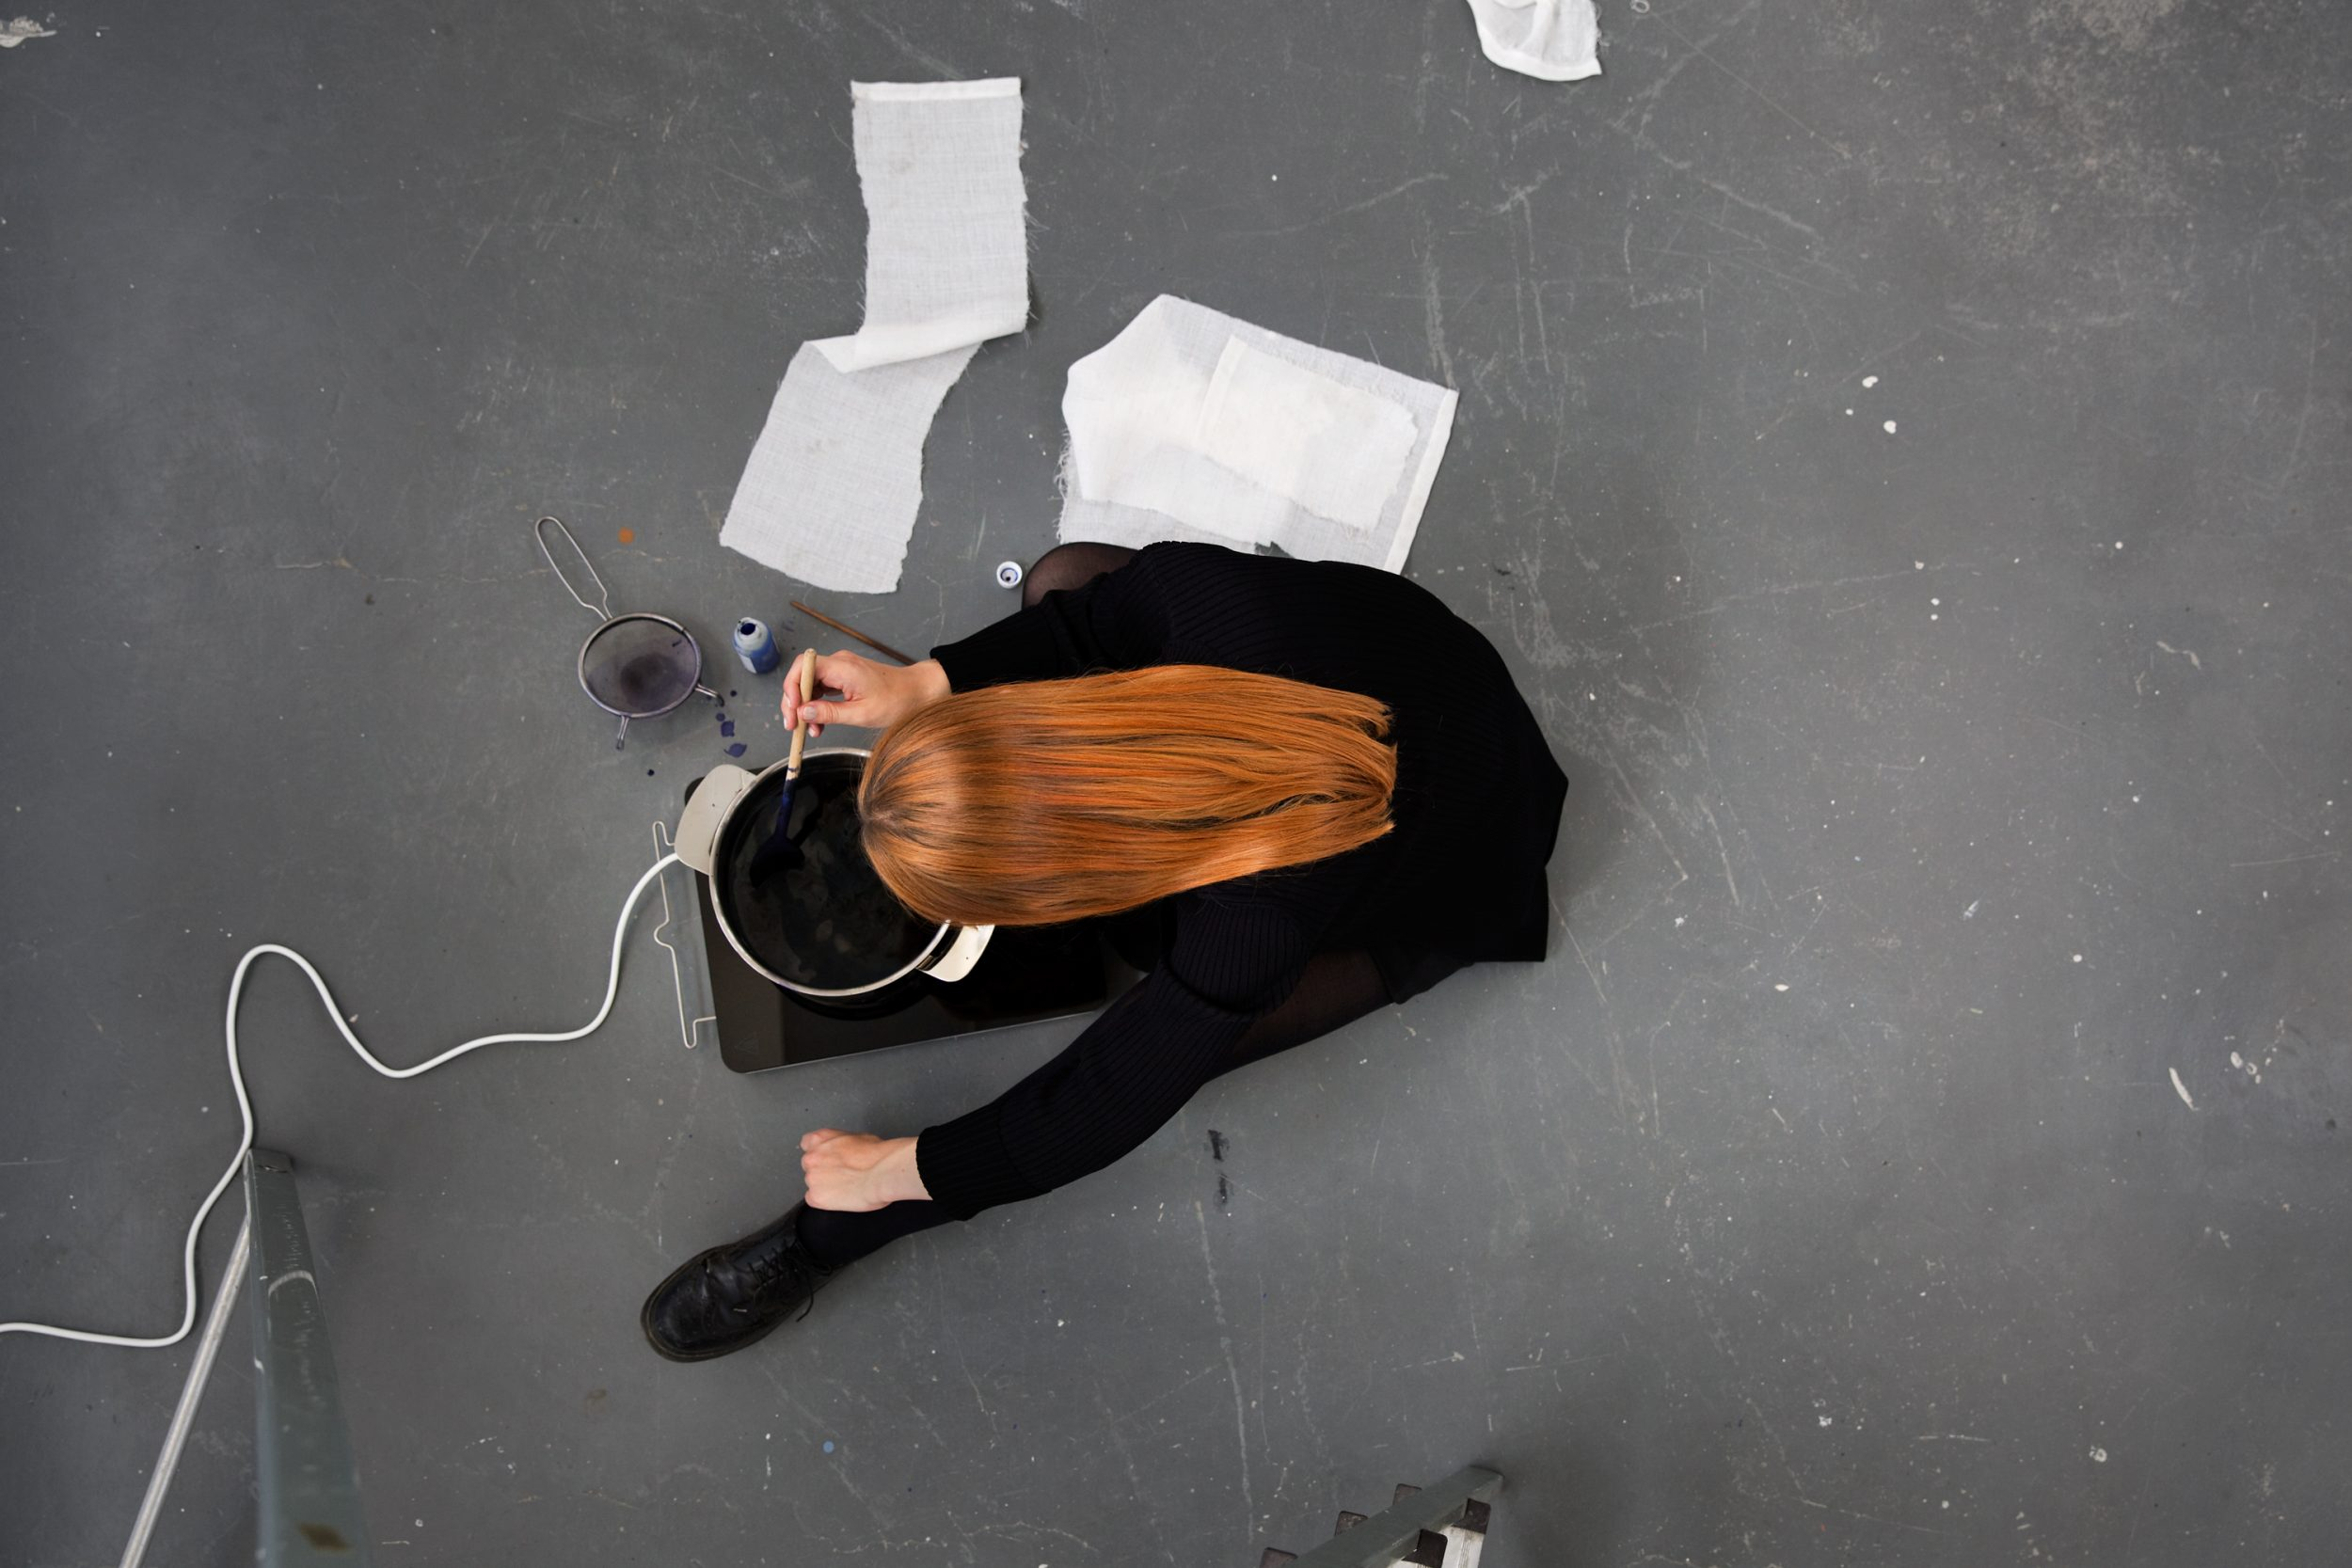 A woman with long red hair dressed in black sits on a floor, leaning over a pot placed on a portable hob.